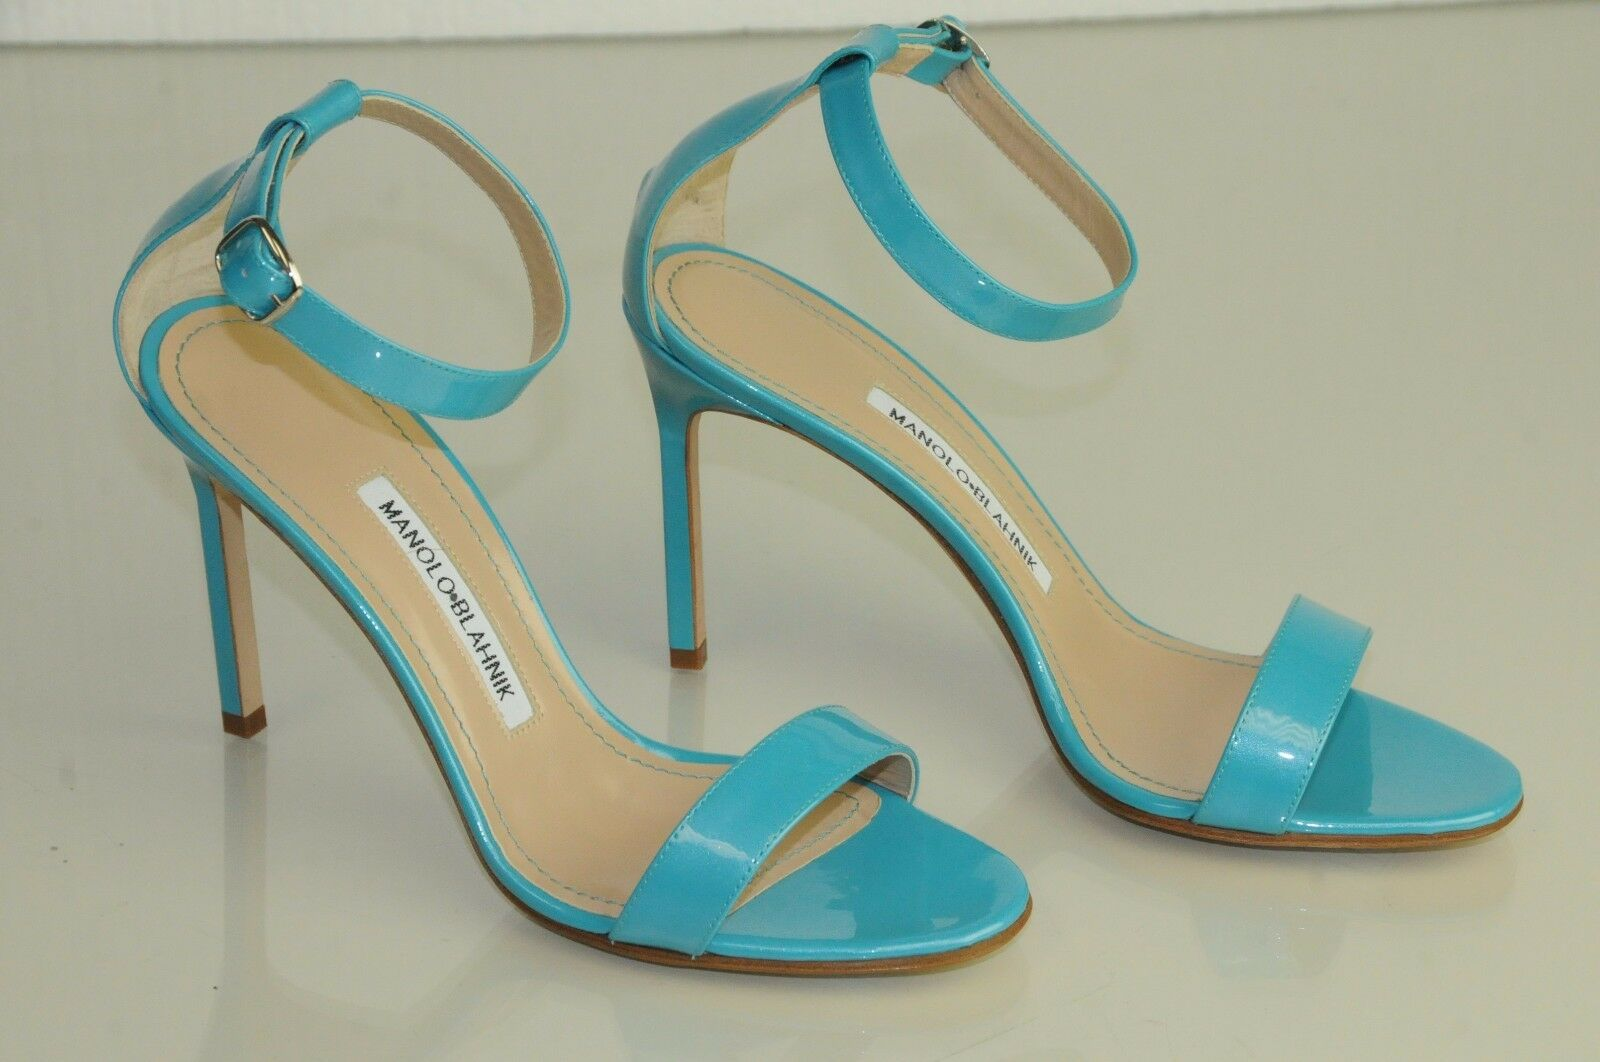 745 New Manolo Blahnik CHAOS Pearly Turquoise patent leather Sandals shoes 37